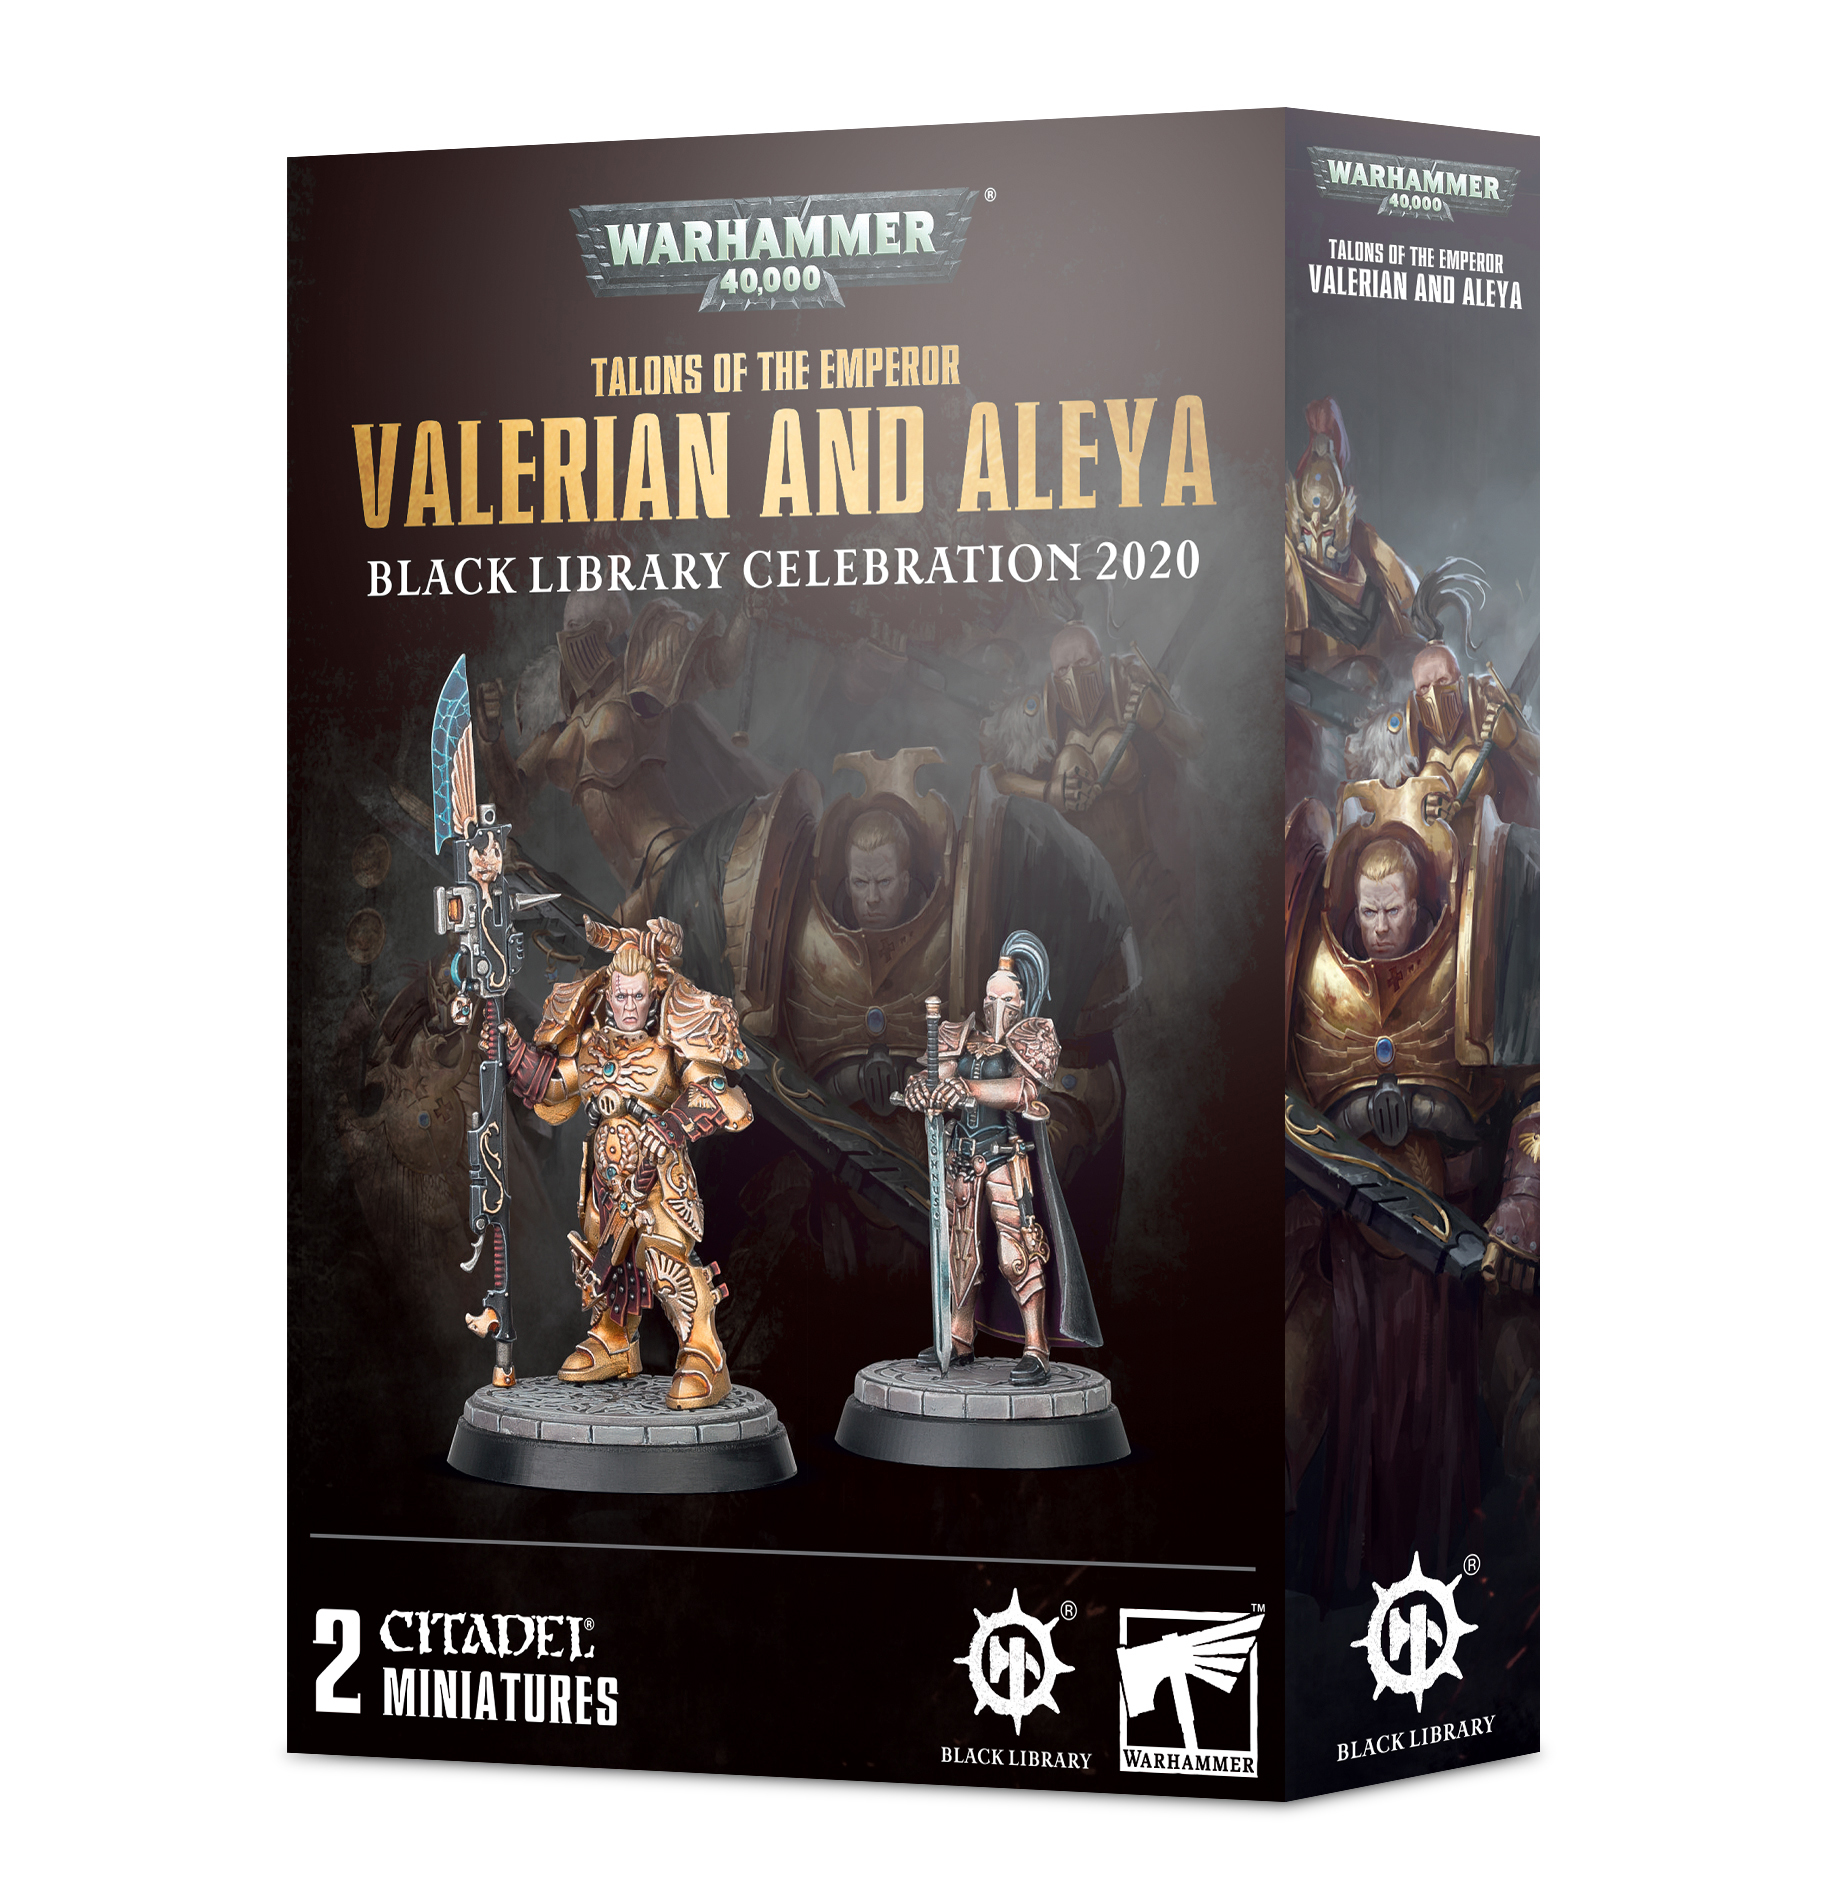 Valerian and Aleya, Talons of the Emperor